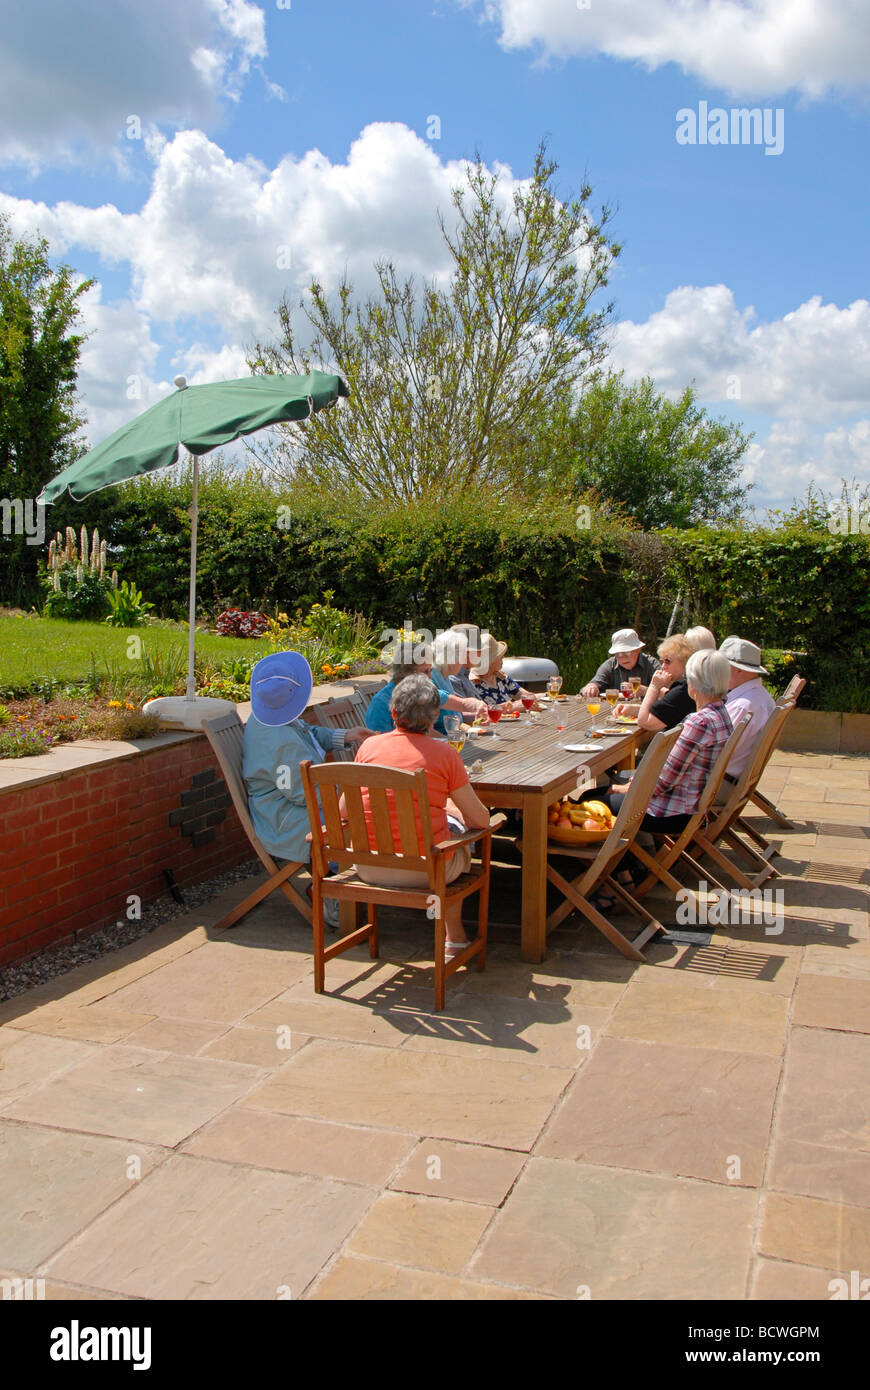 Group of elderly people enjoying a meal in the open air - Stock Image